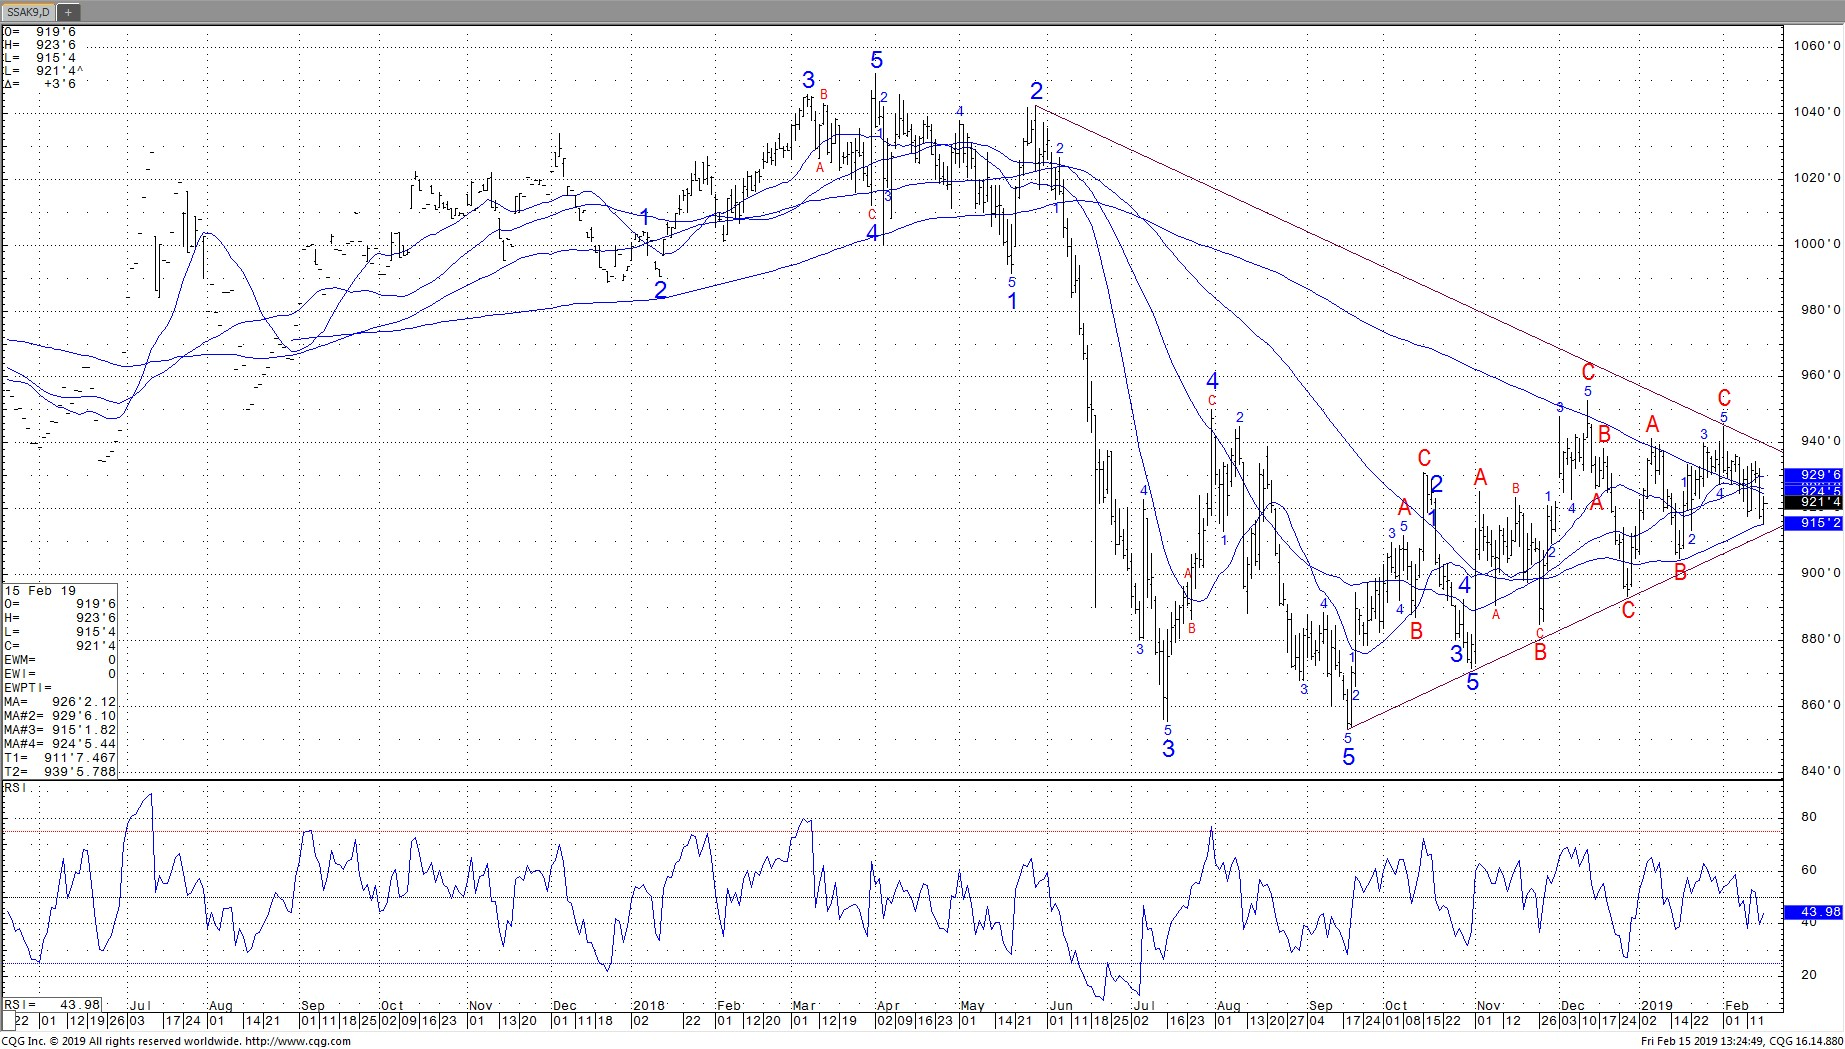 May Daily Soybeans Chart